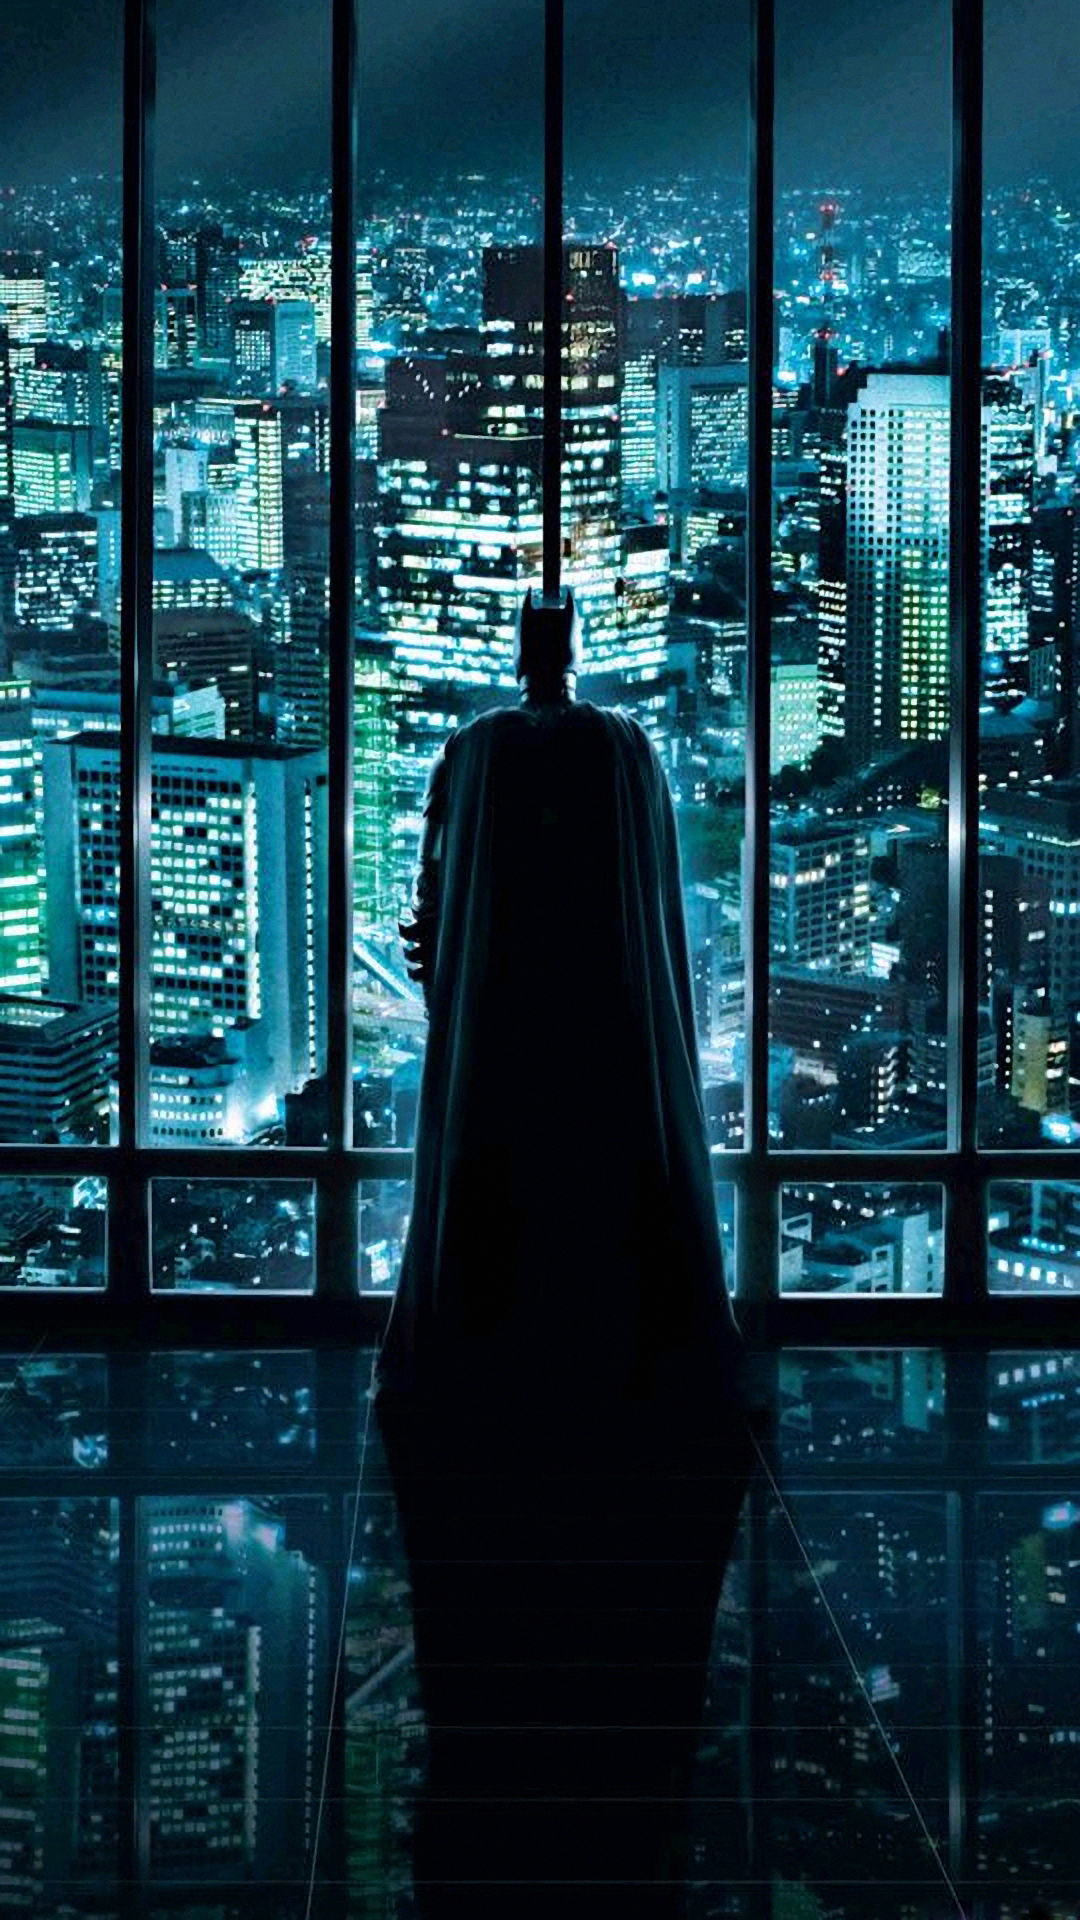 Hd Wallpapers Samsung Htc Android Smartphone Batman Hd Wallpapers For Android 1080x1920 Wallpaper Teahub Io